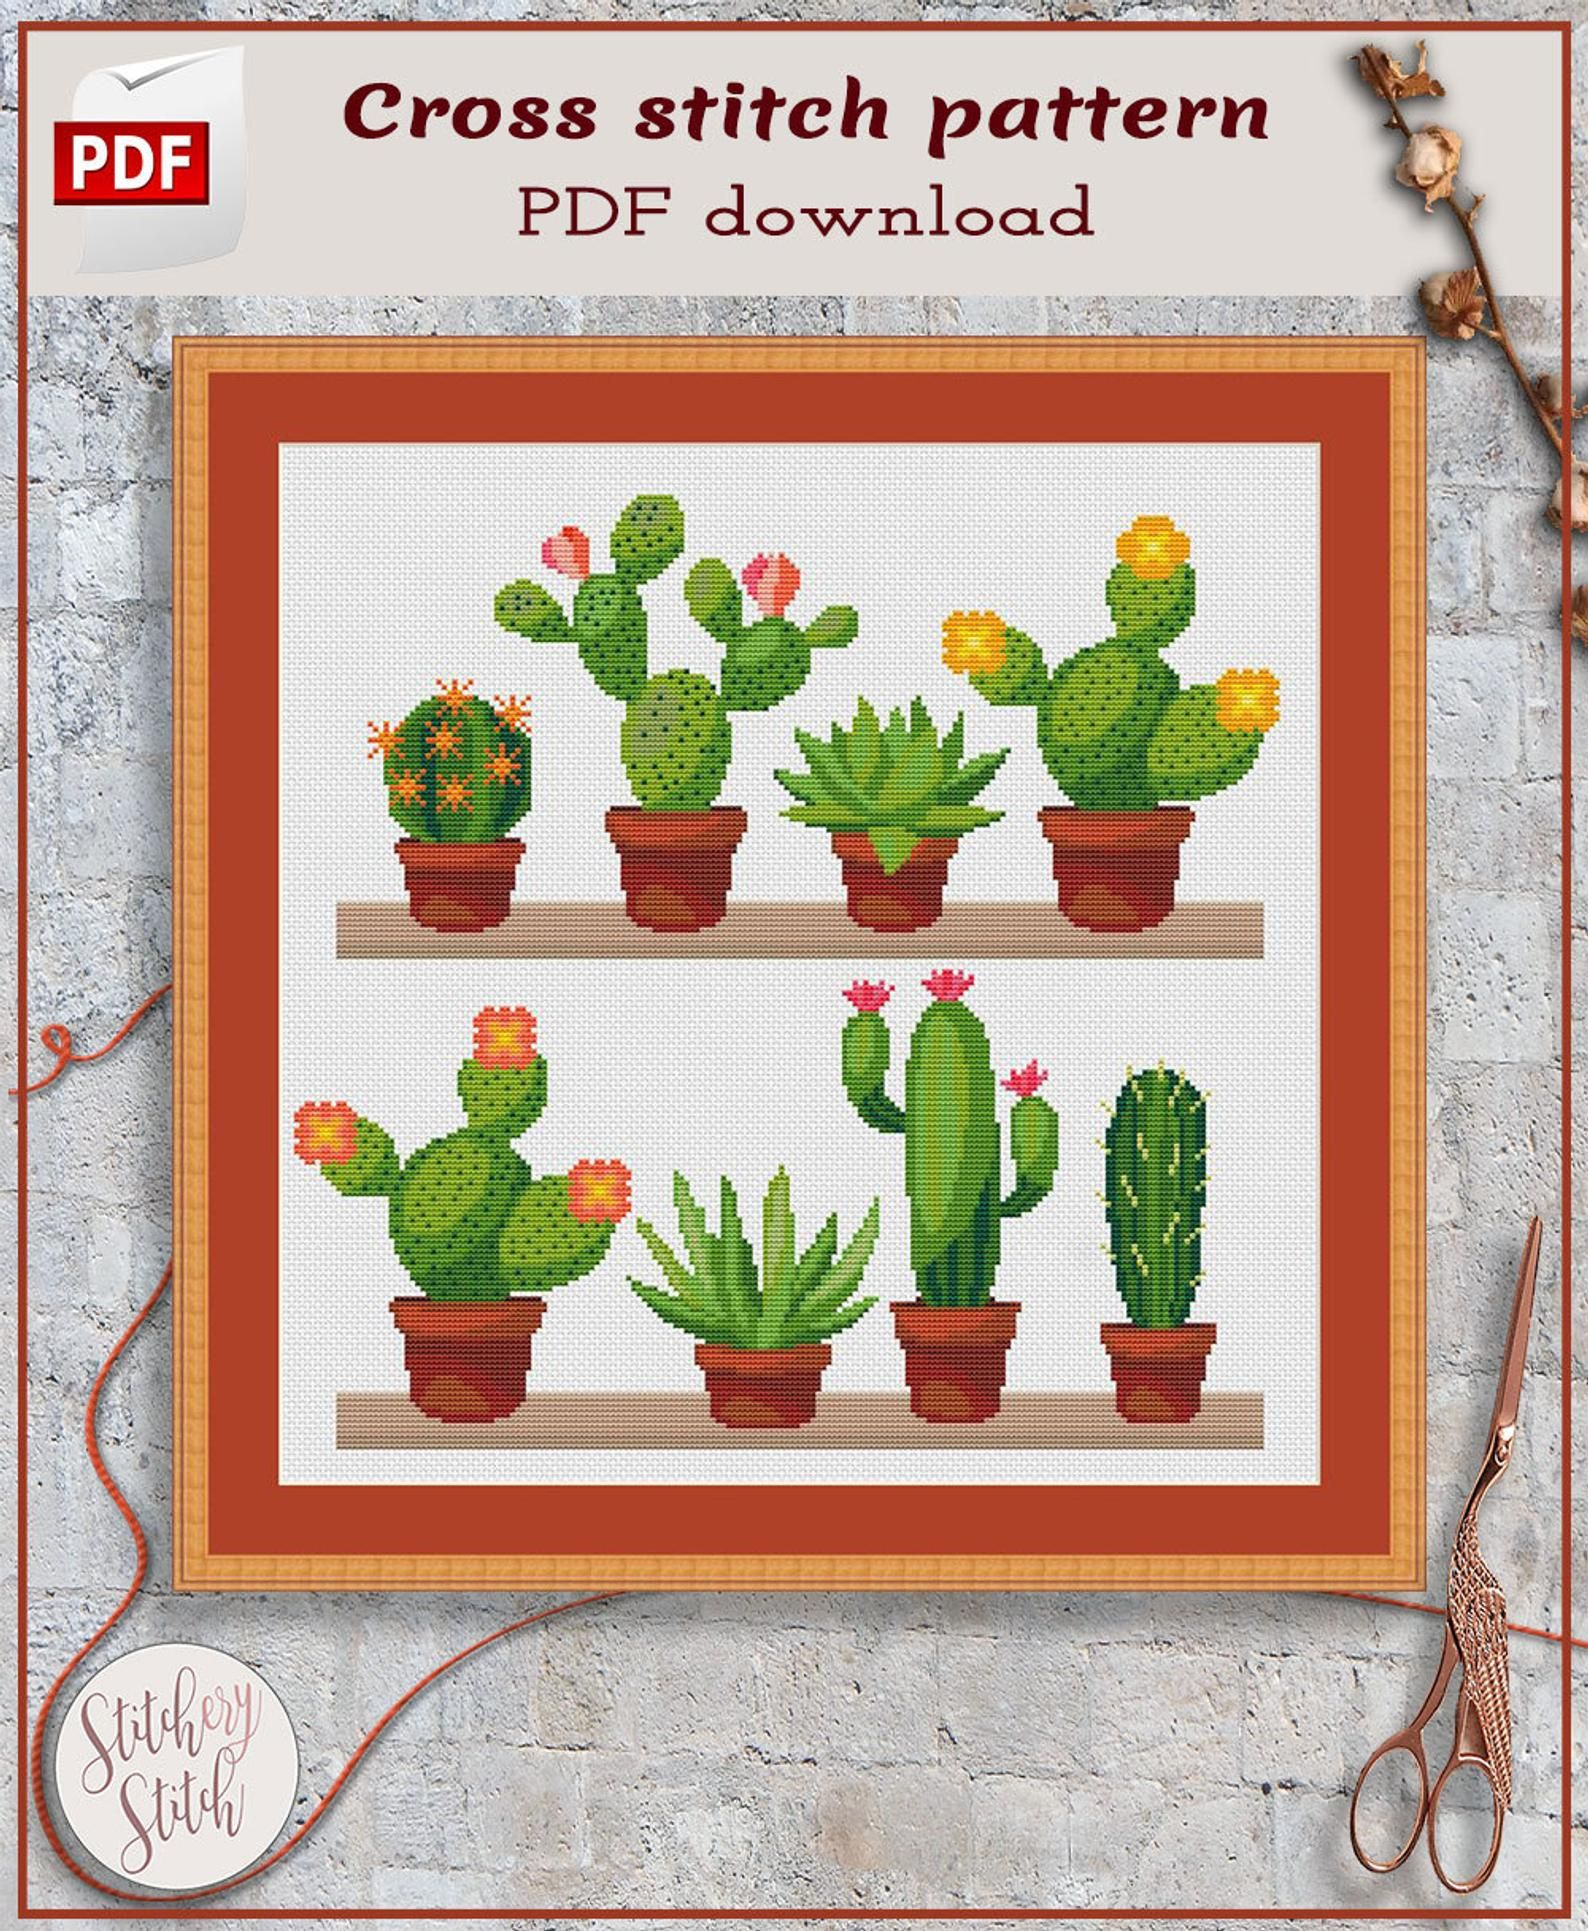 Cactus Cross Stitch Pattern Succulent Cross Stitch Chart Cacti Cross Stitch Design Modern Cross Stitch Pattern Pdf Punto De Cruz Moderno Punto De Cruz Patrones Y Bordados En Punto Cruz